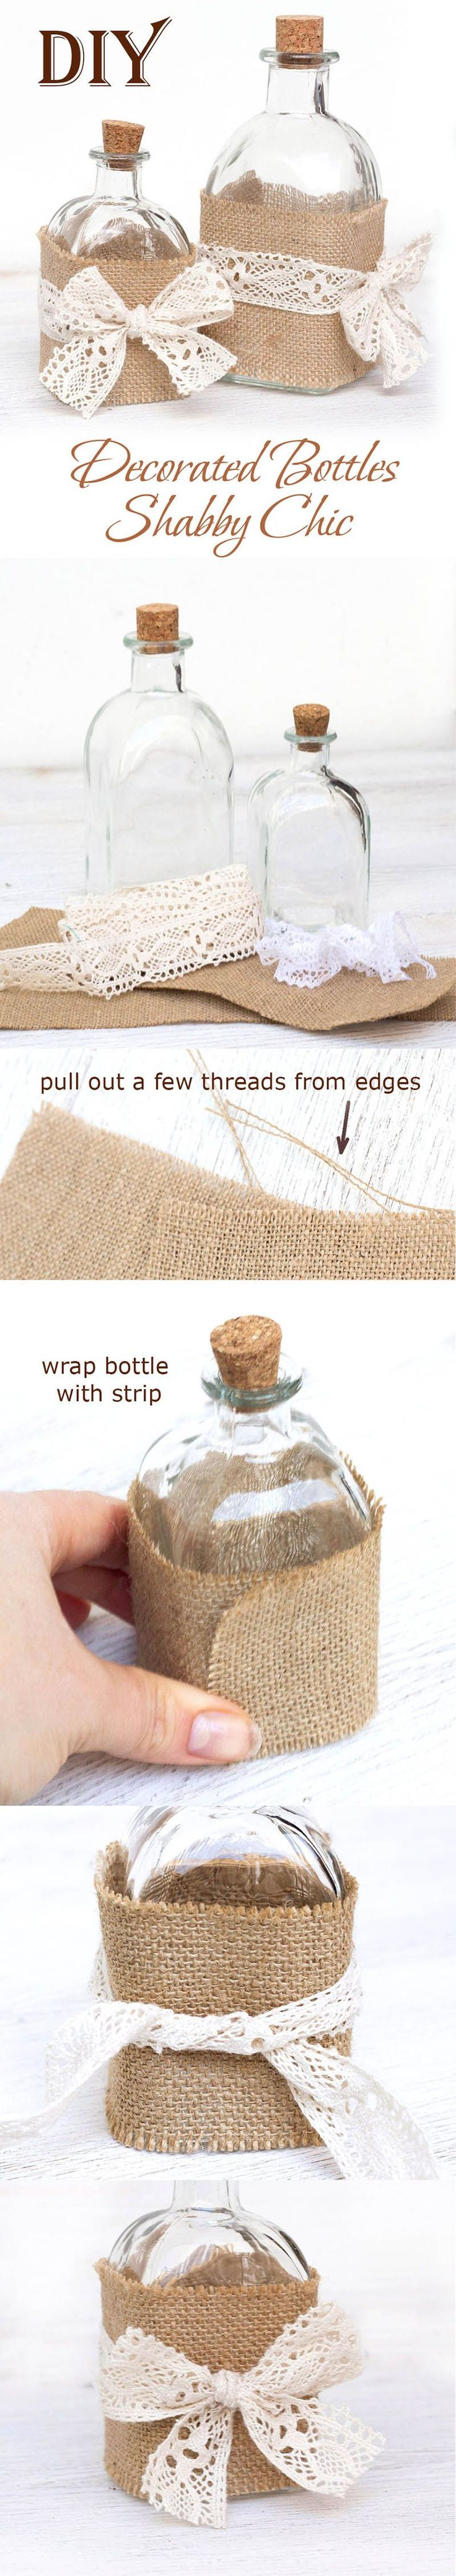 Decorate bottle in shabby chic DIY(Easy Burlap and Lace Craft)!